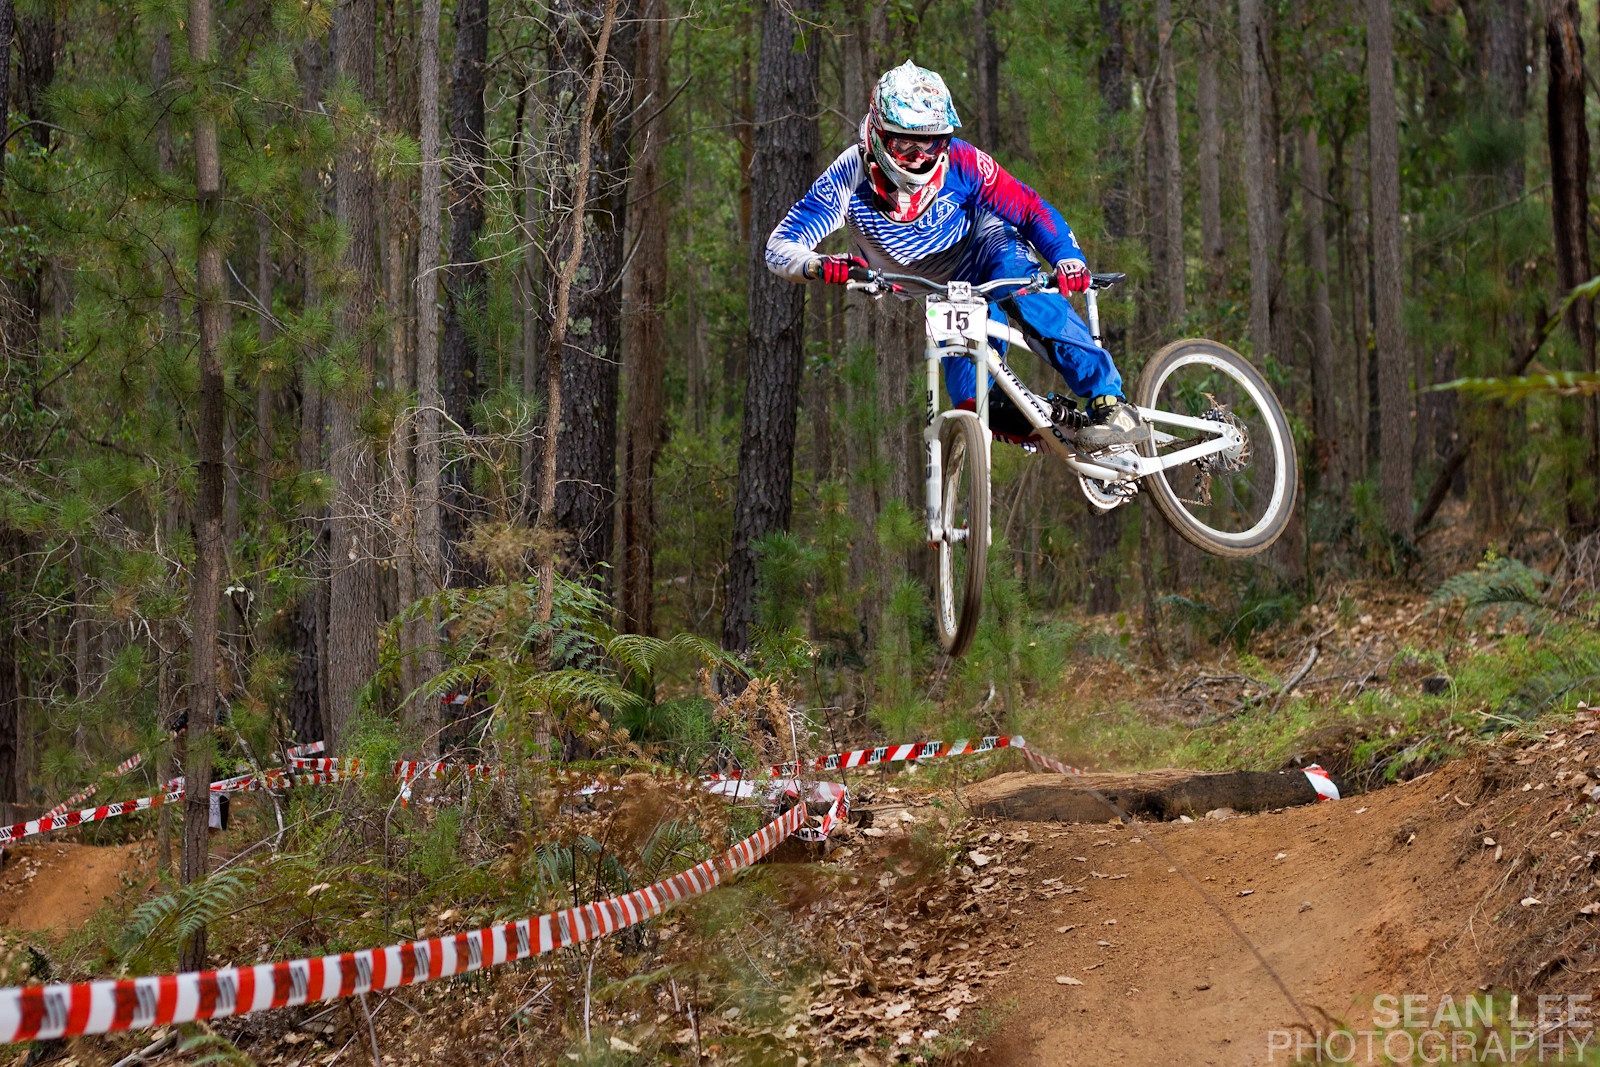 Whipping in practice - Chamakazi - Mountain Biking Pictures - Vital MTB